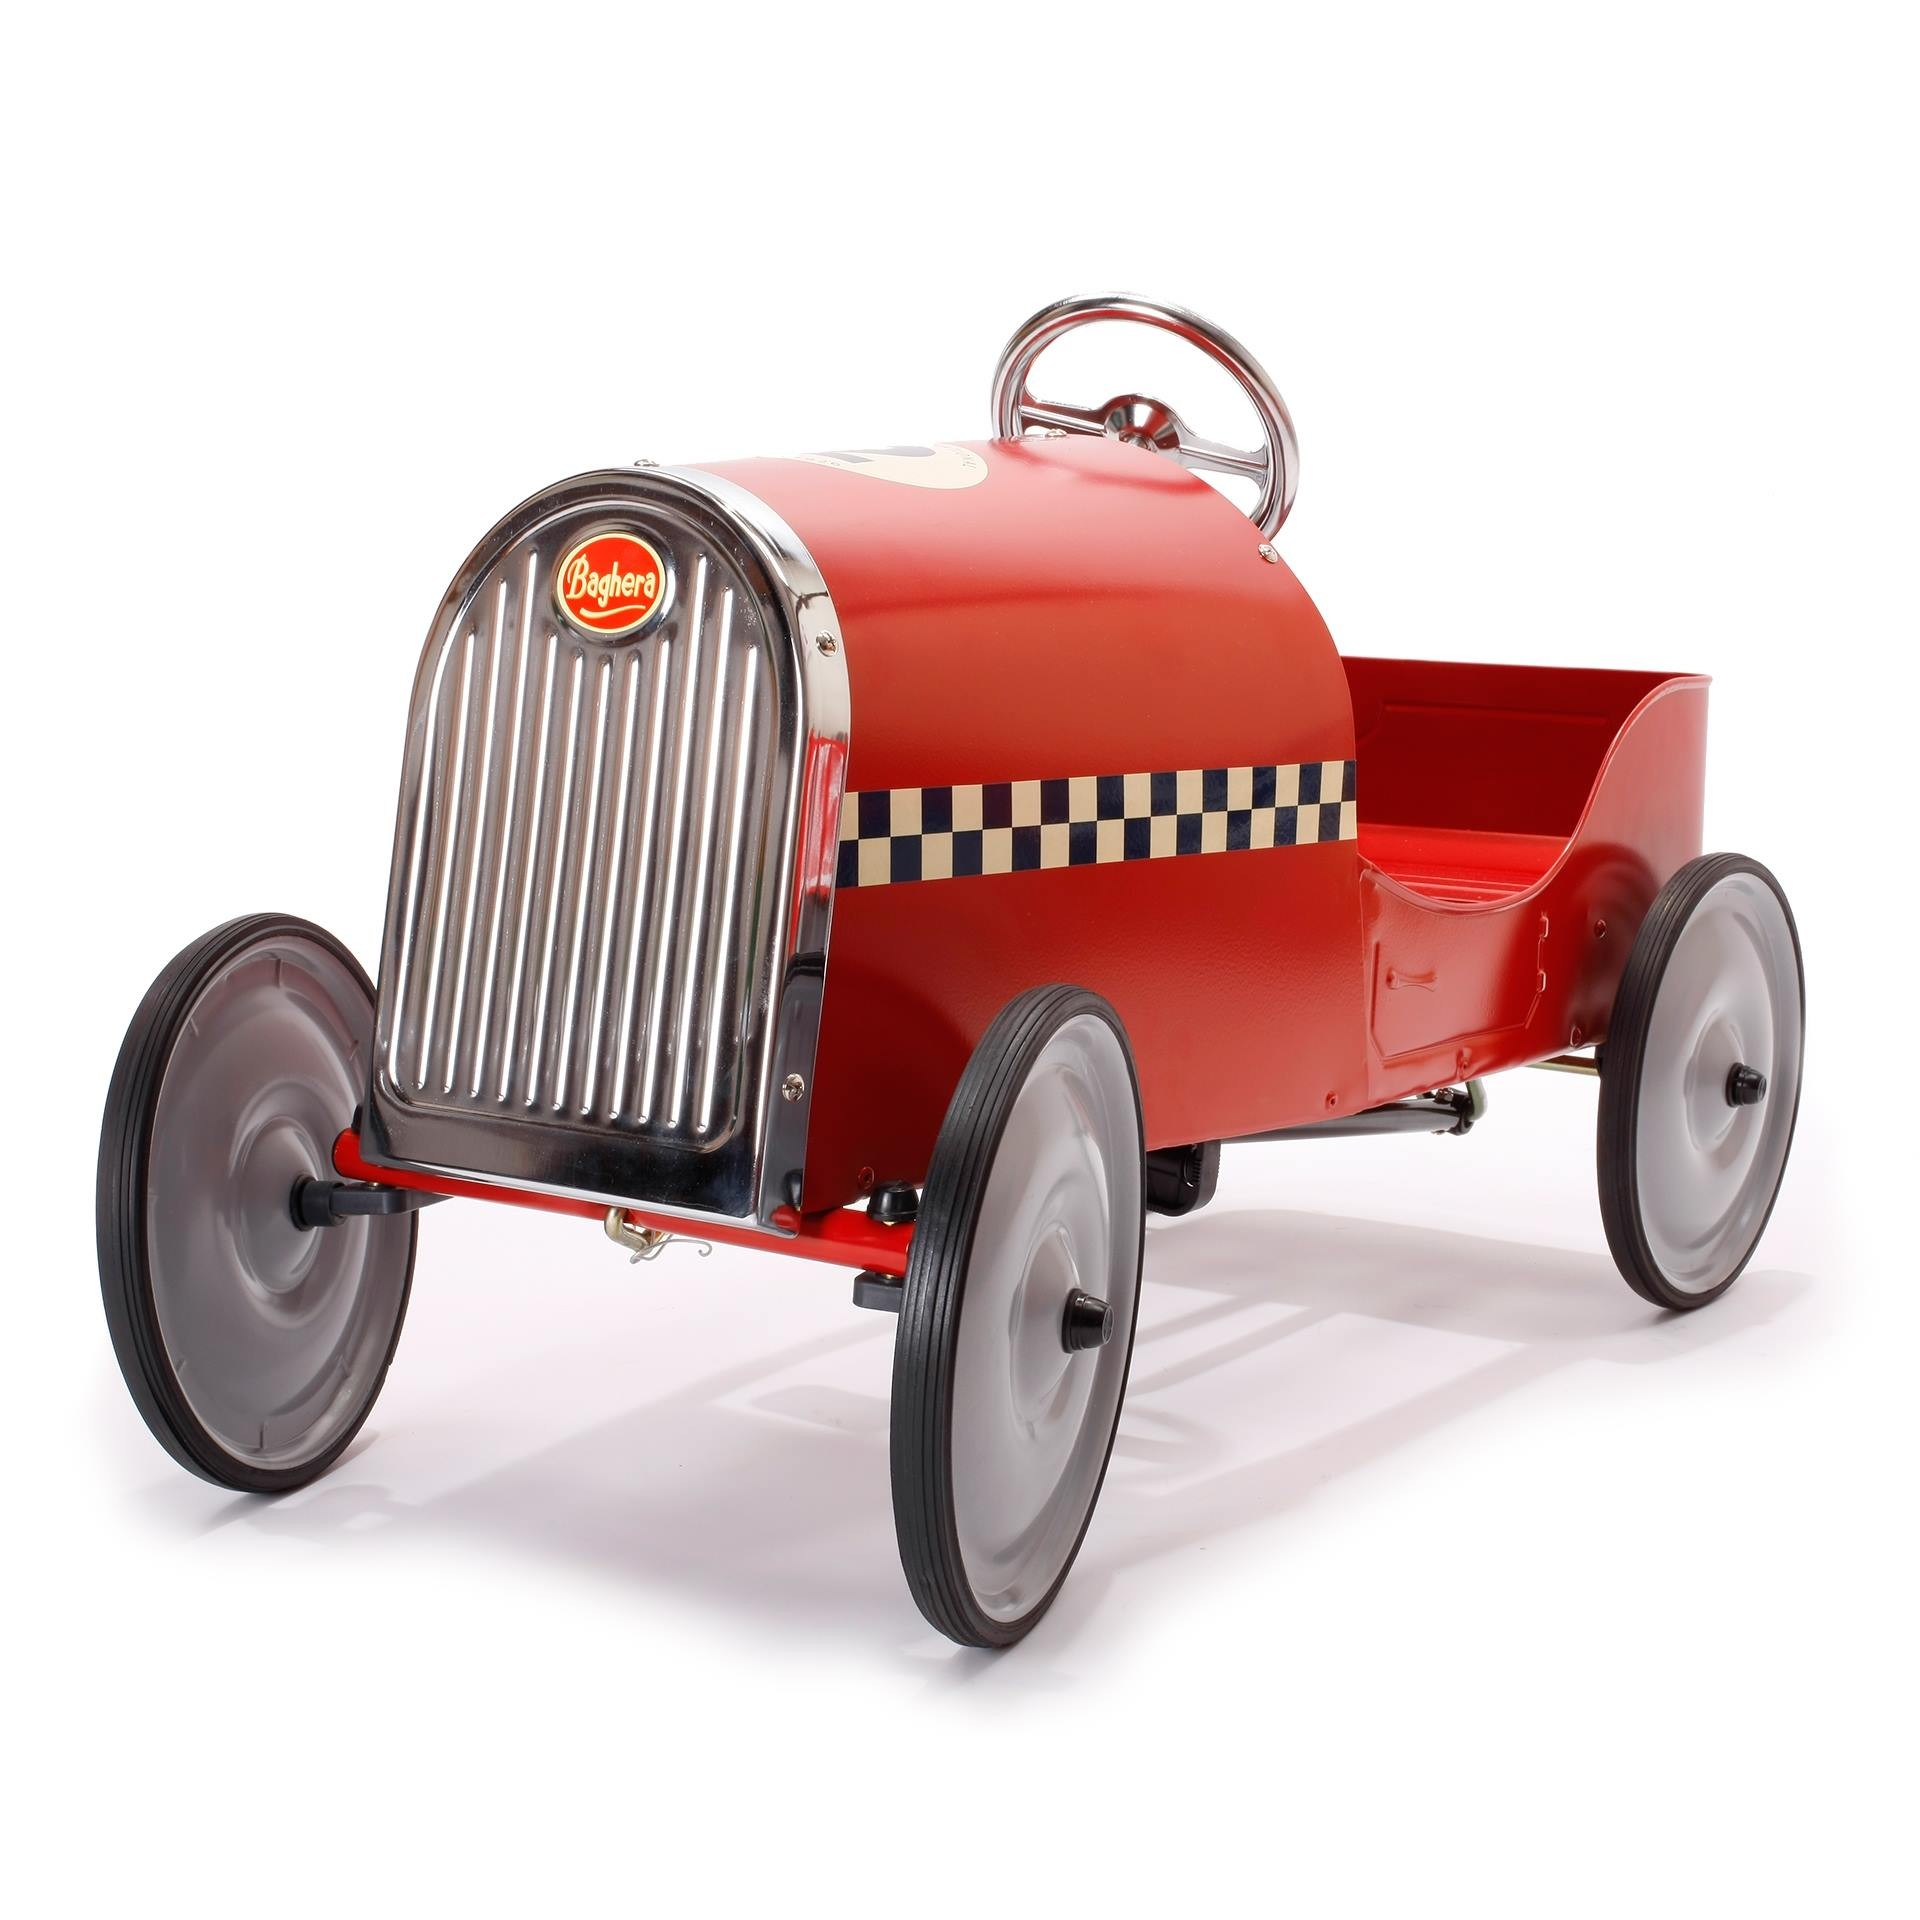 legend red pedal cars